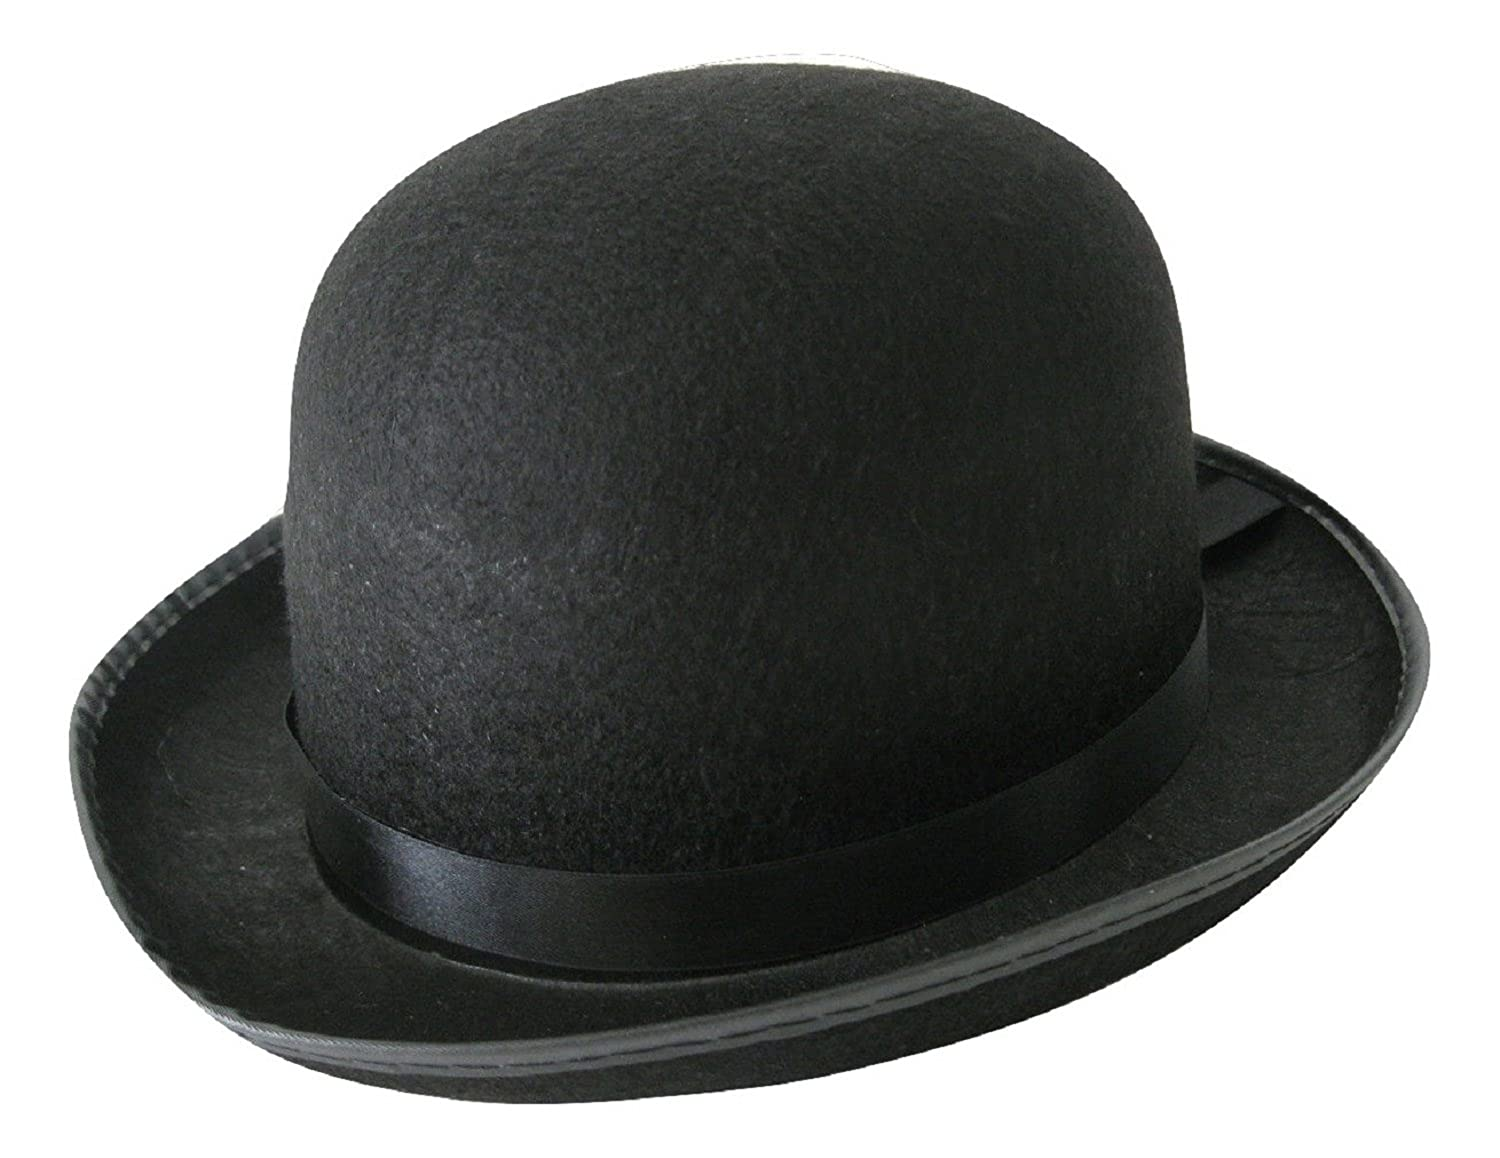 MyPartyShirt Mens Roaring 20s Black Felt Derby Light Bowler Top Hat Costume Accessory